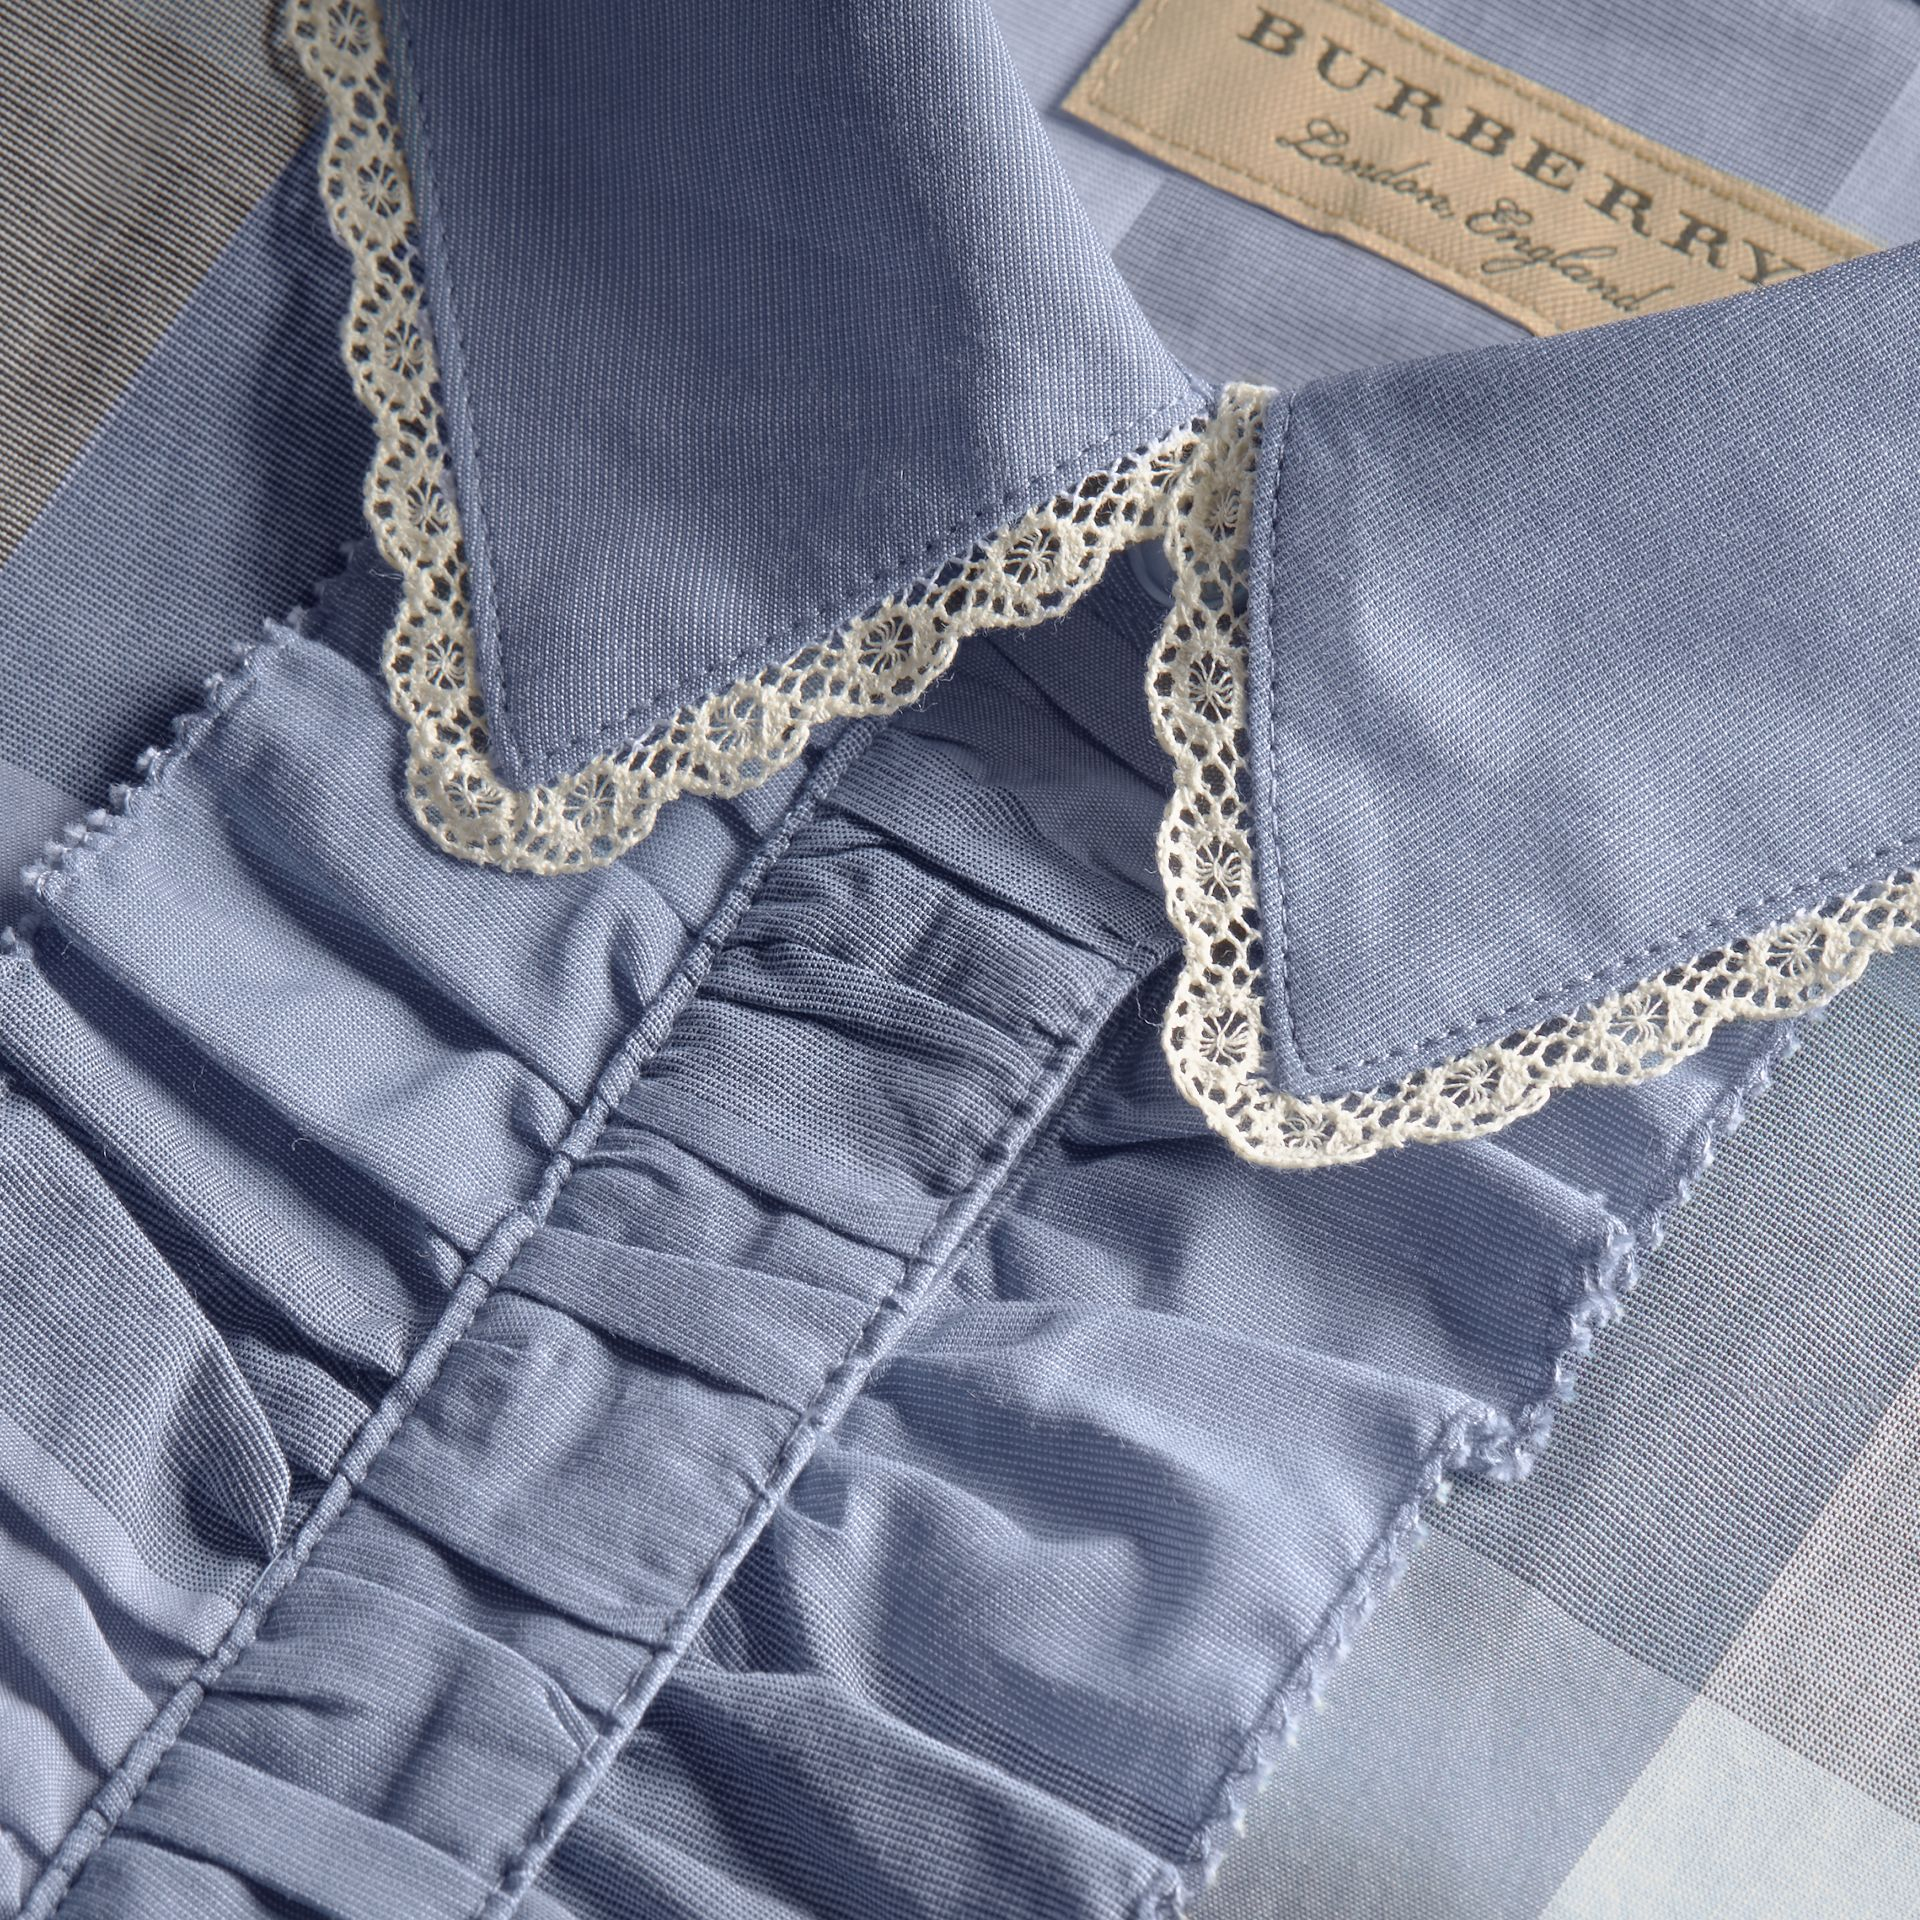 Ruffle Detail and Lace Trim Check Cotton Shirt Canvas Blue - gallery image 2